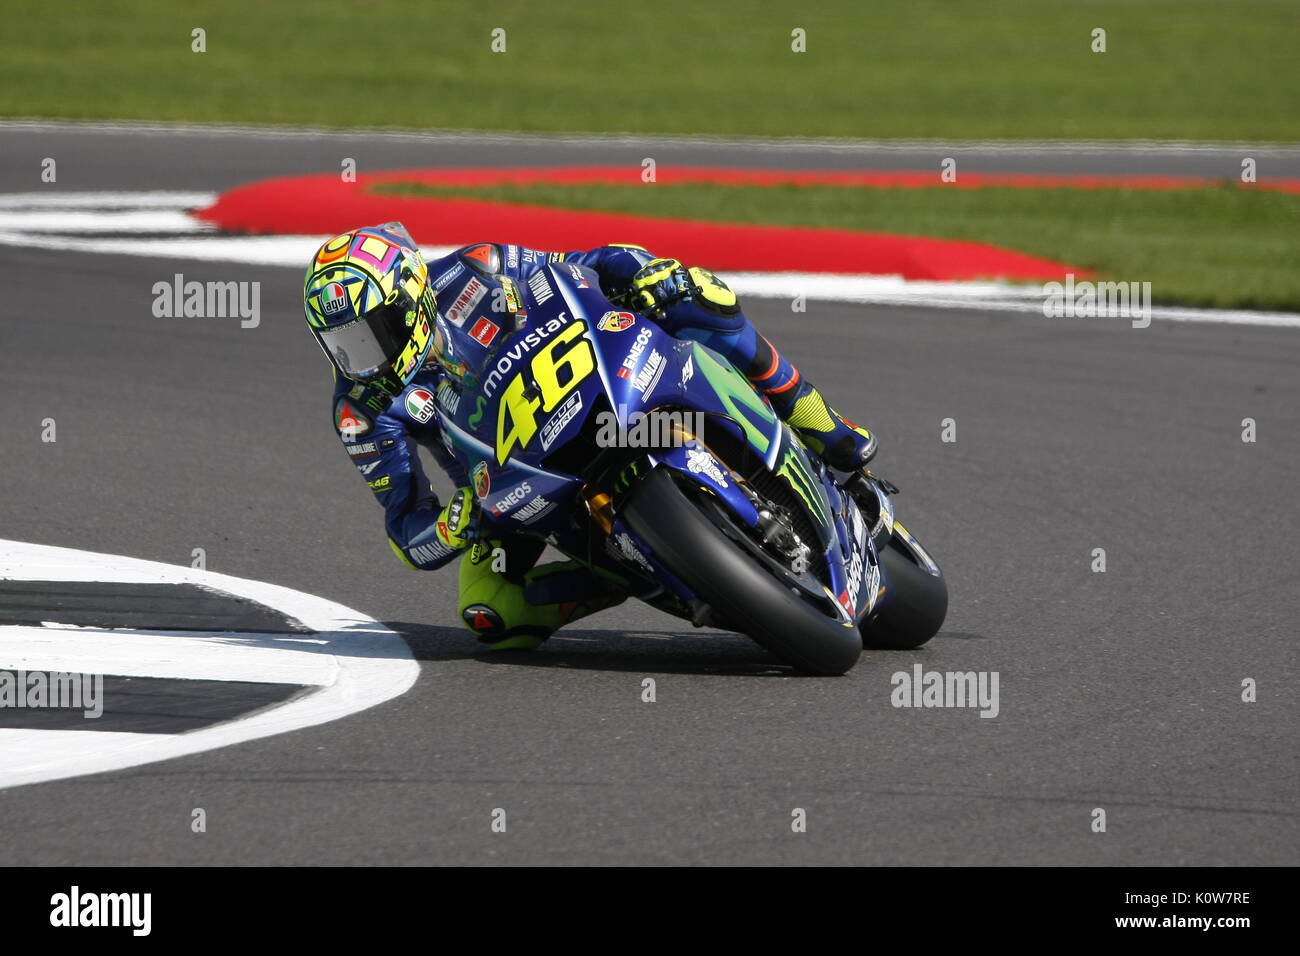 Silverstone, UK. 25th Aug, 2017. Silverstone, 25th August, 2017 The GOAT - Valantino Rossi on his Yamaha during the OCTO British MotoGP weekend Credit: Motofoto/Alamy Live News - Stock Image